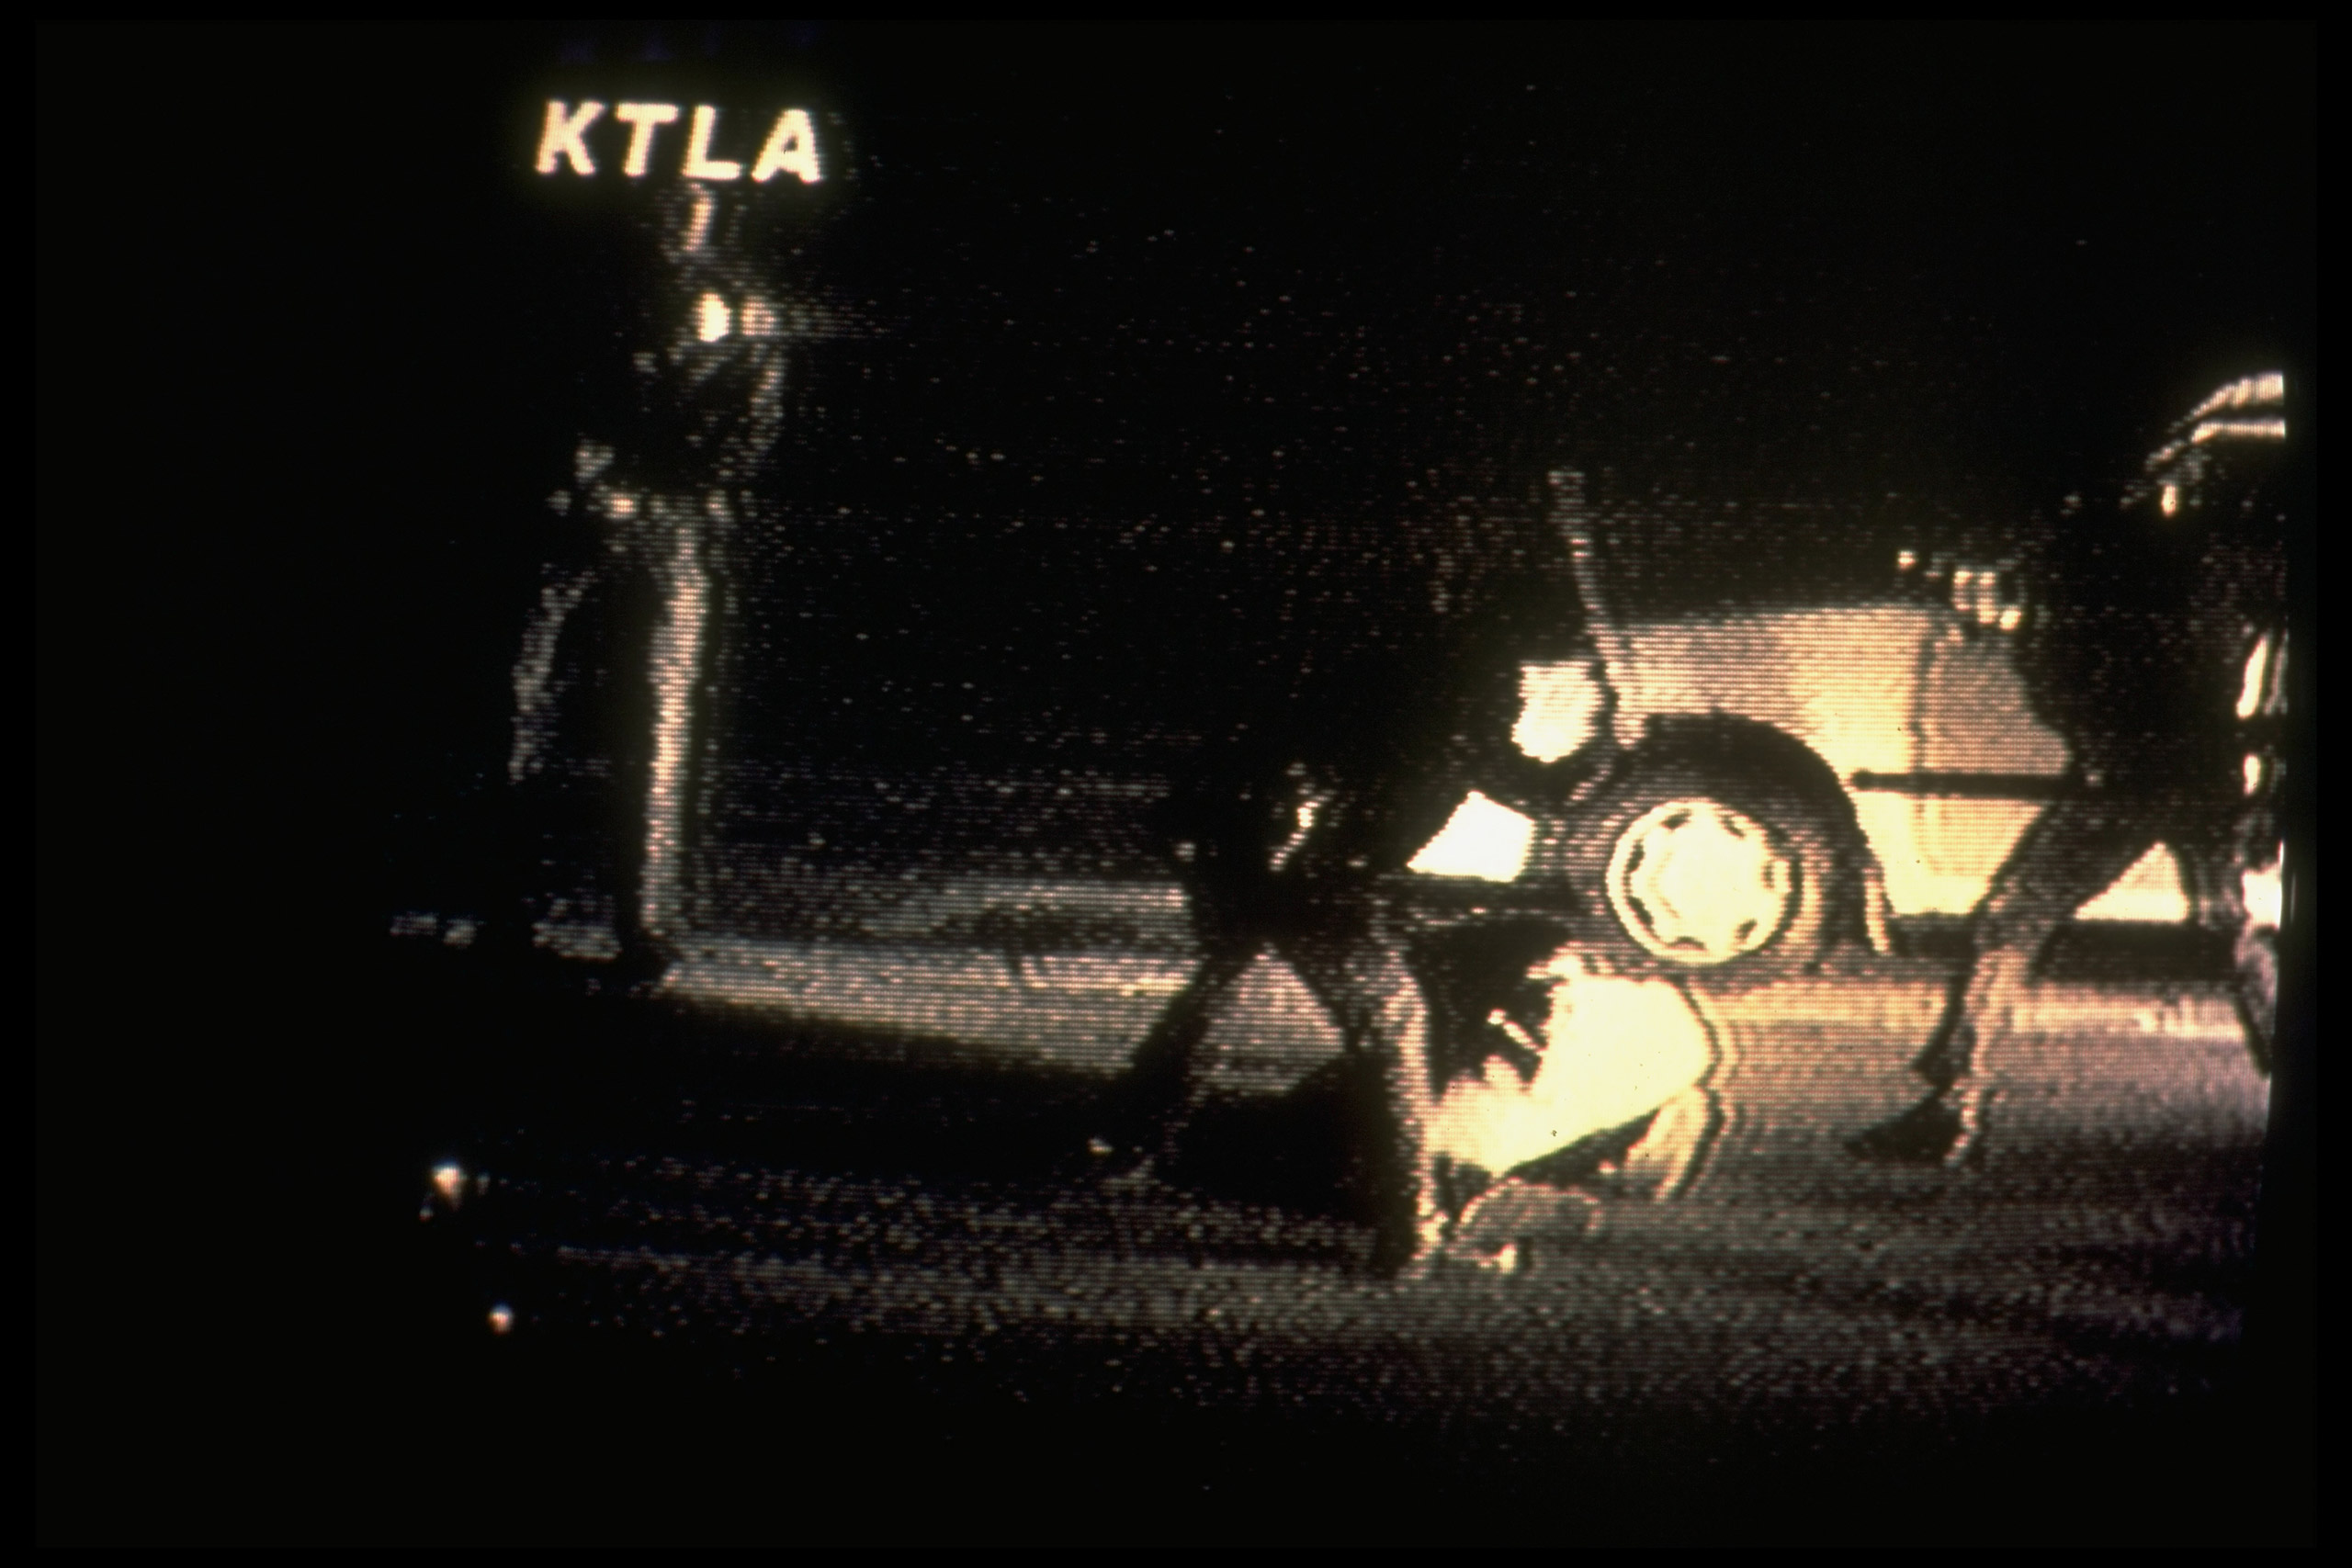 Video image of LA cops beating black motorist Rodney King as he lies on ground; taken by camcorder enthusiast George Holliday fr. window overlooking street. 1991.